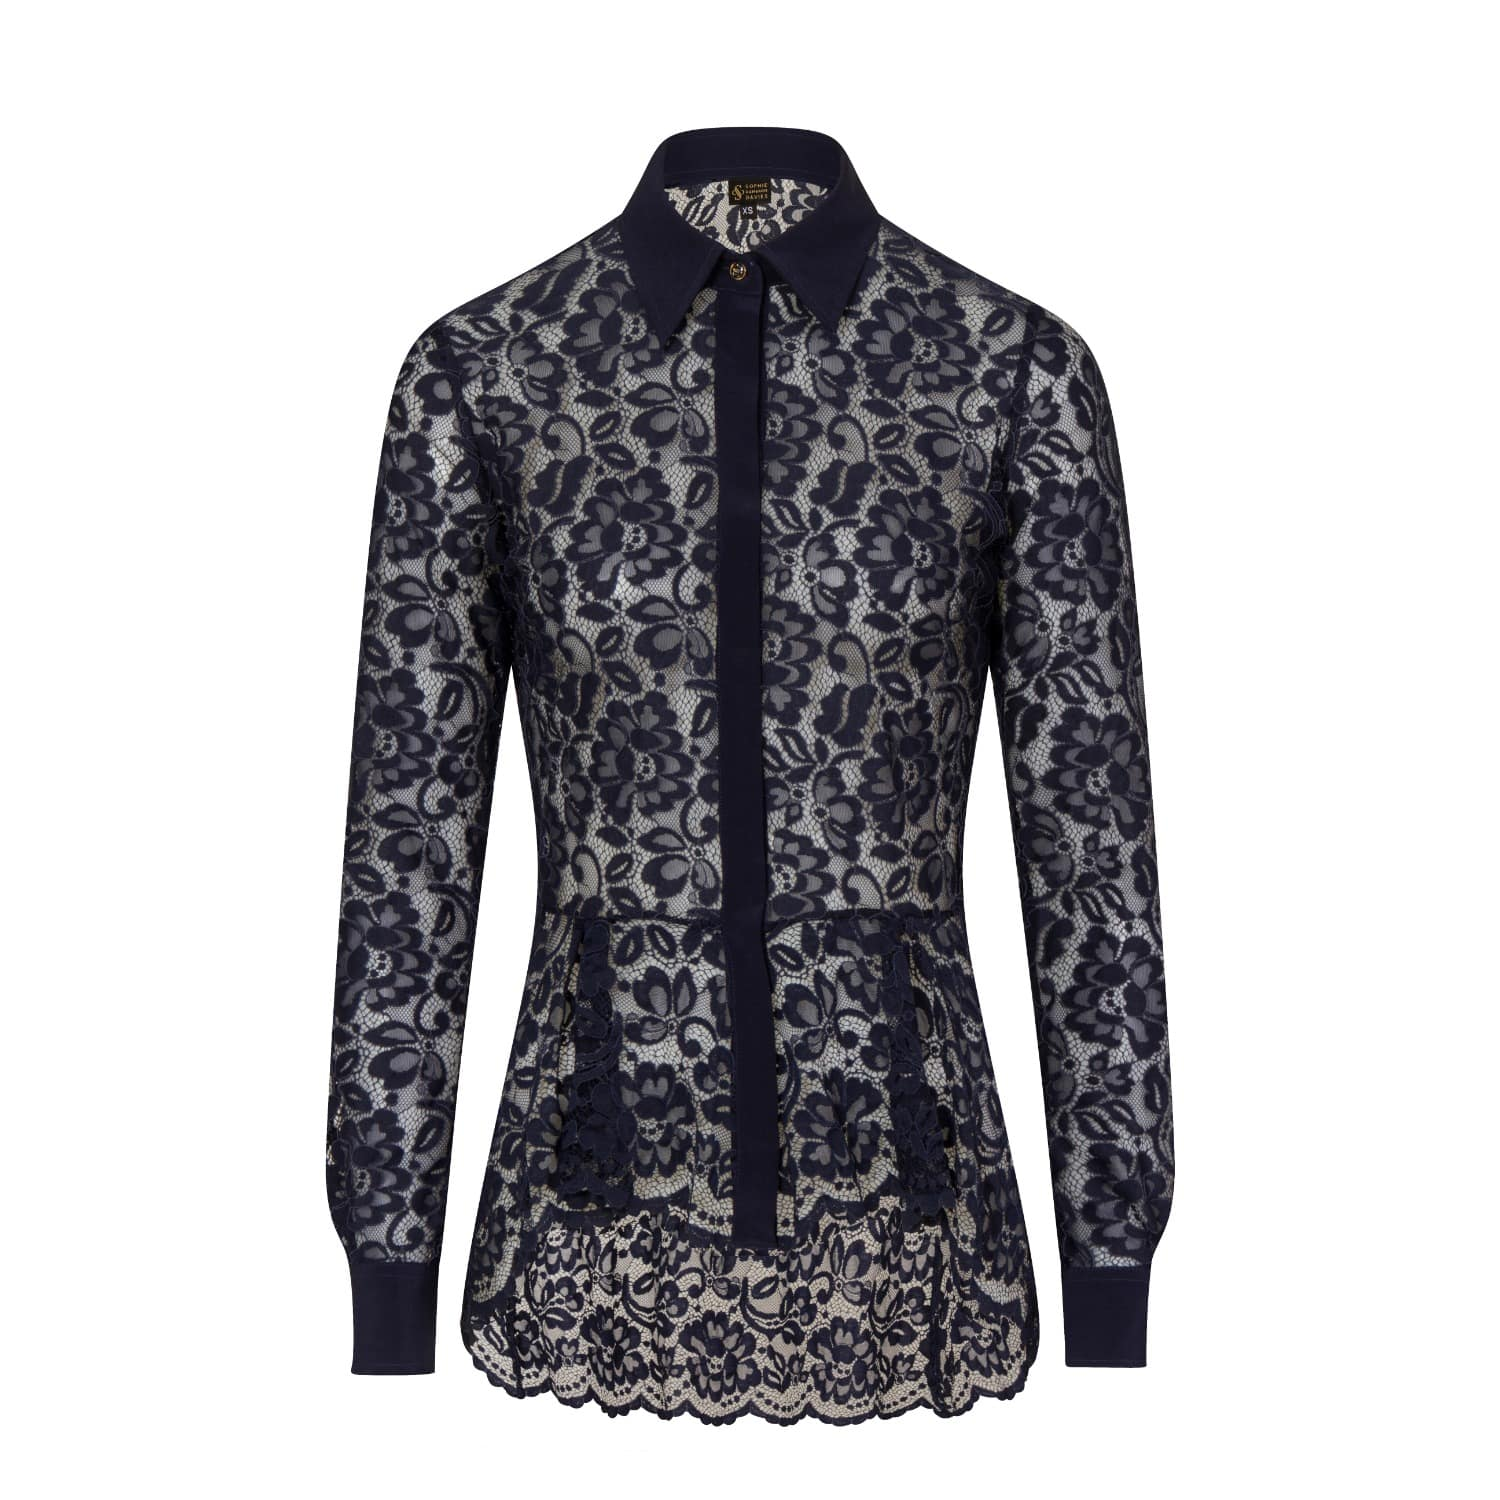 Midnight Blue Lace Shirt Sophie Cameron Davies Wolf Badger